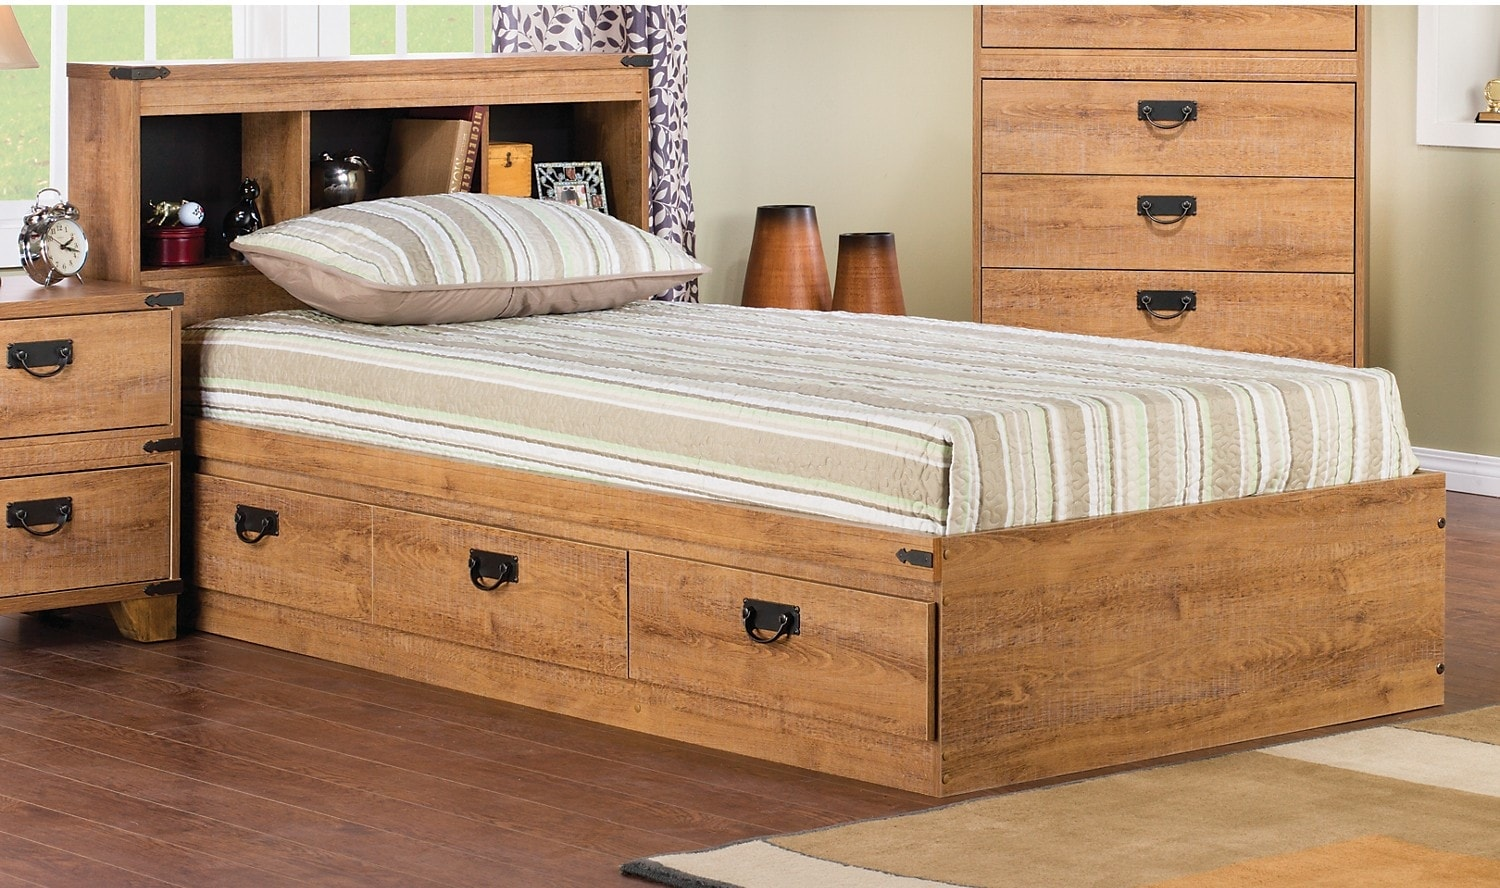 Kids Furniture - Driftwood Mates Bed with Headboard